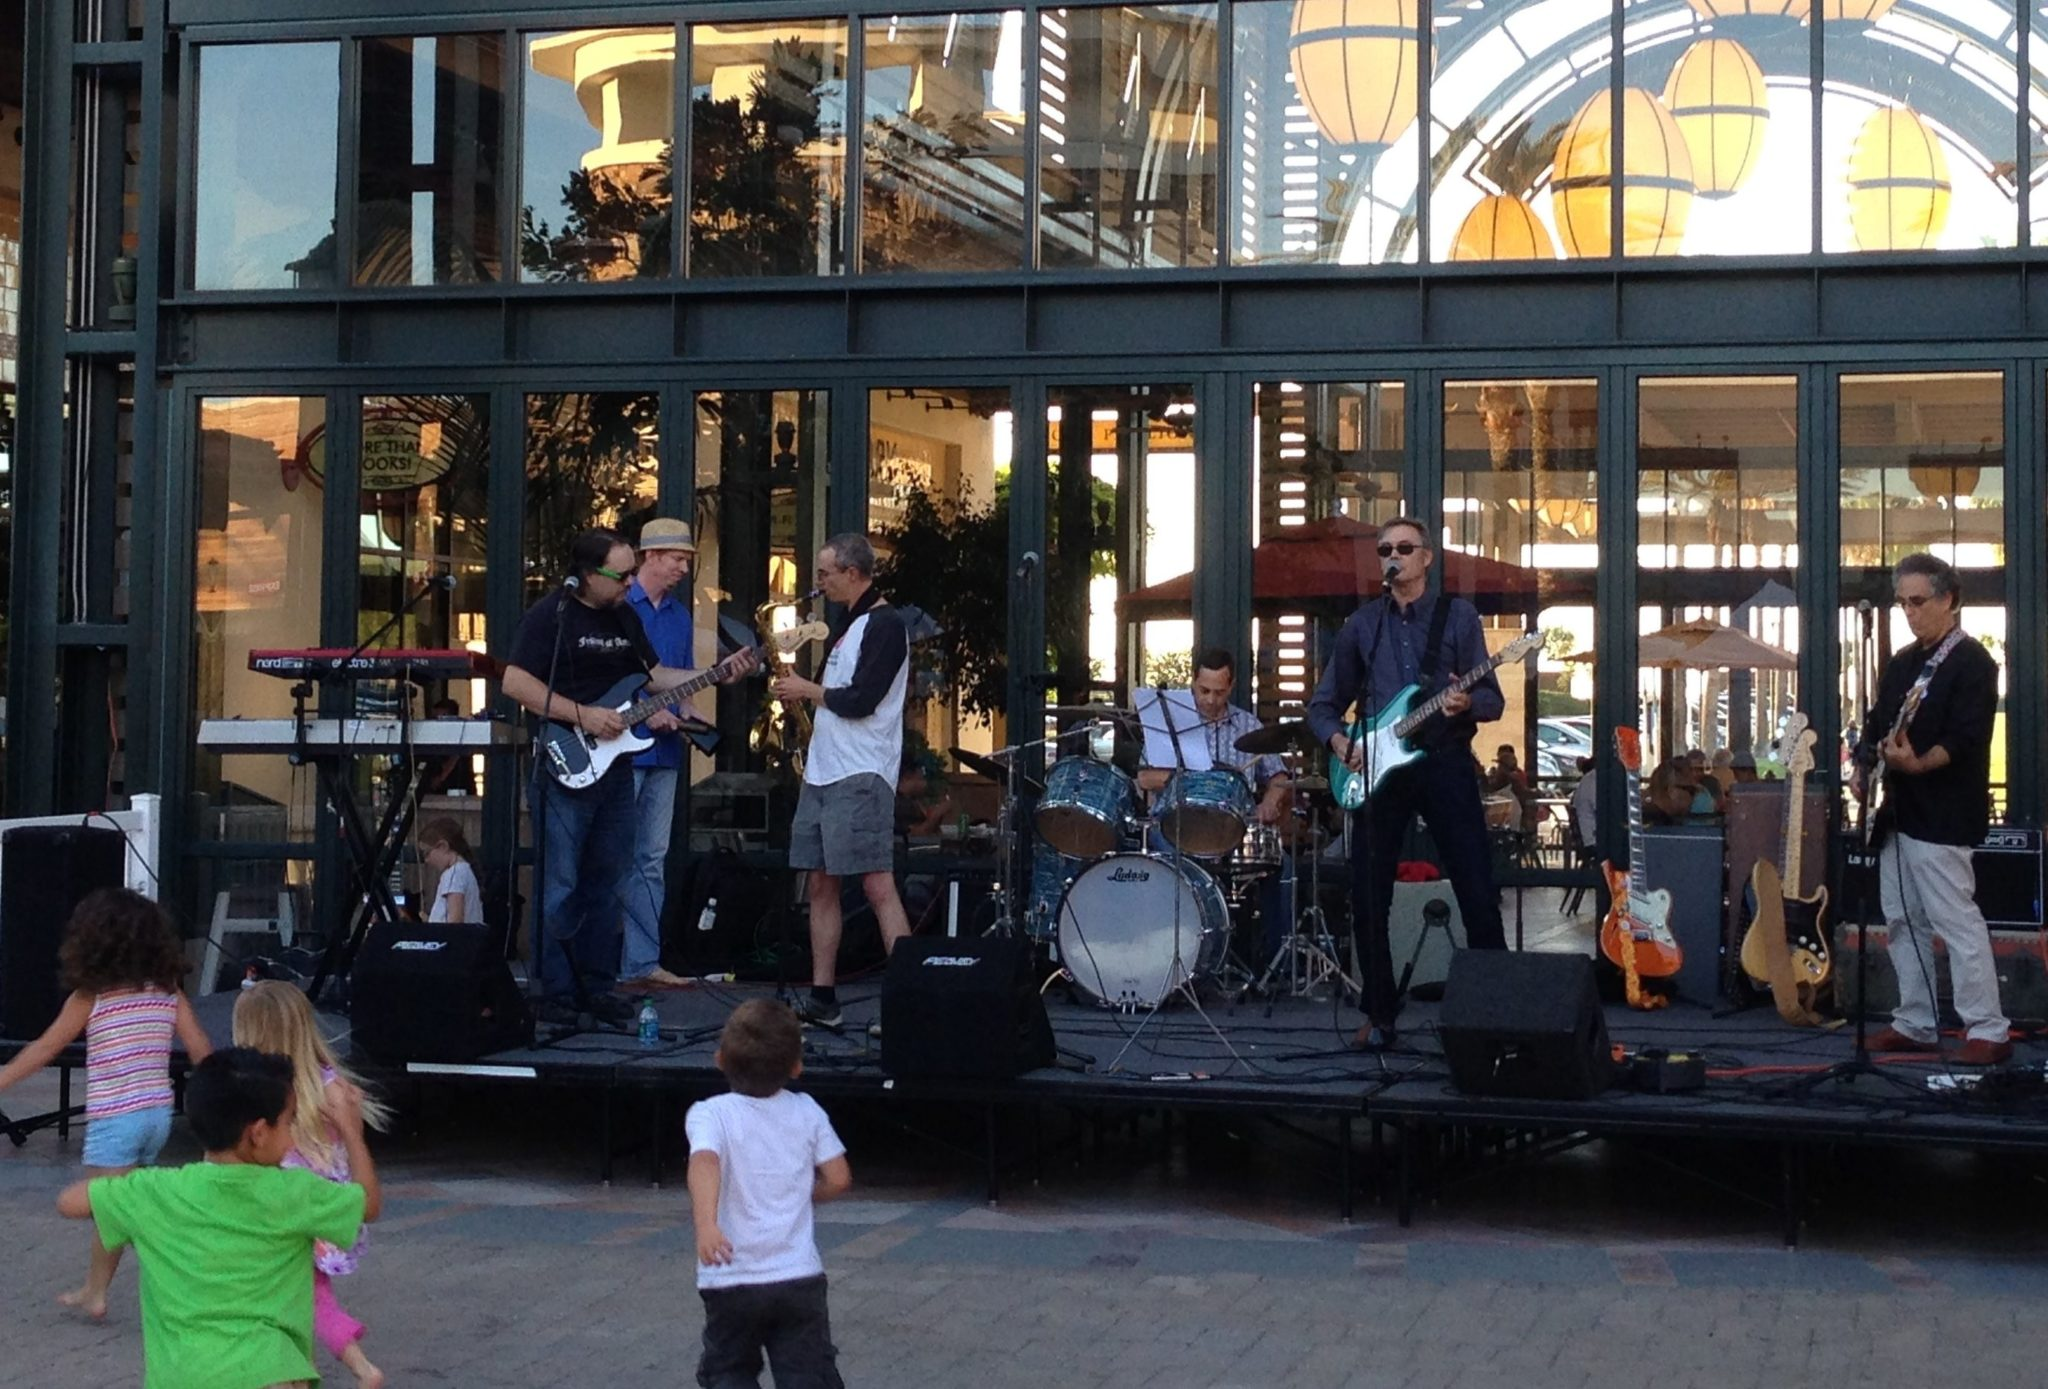 The Innocent Bystanders play live music at Otay Ranch Town Center, Chula Vista, San Diego County